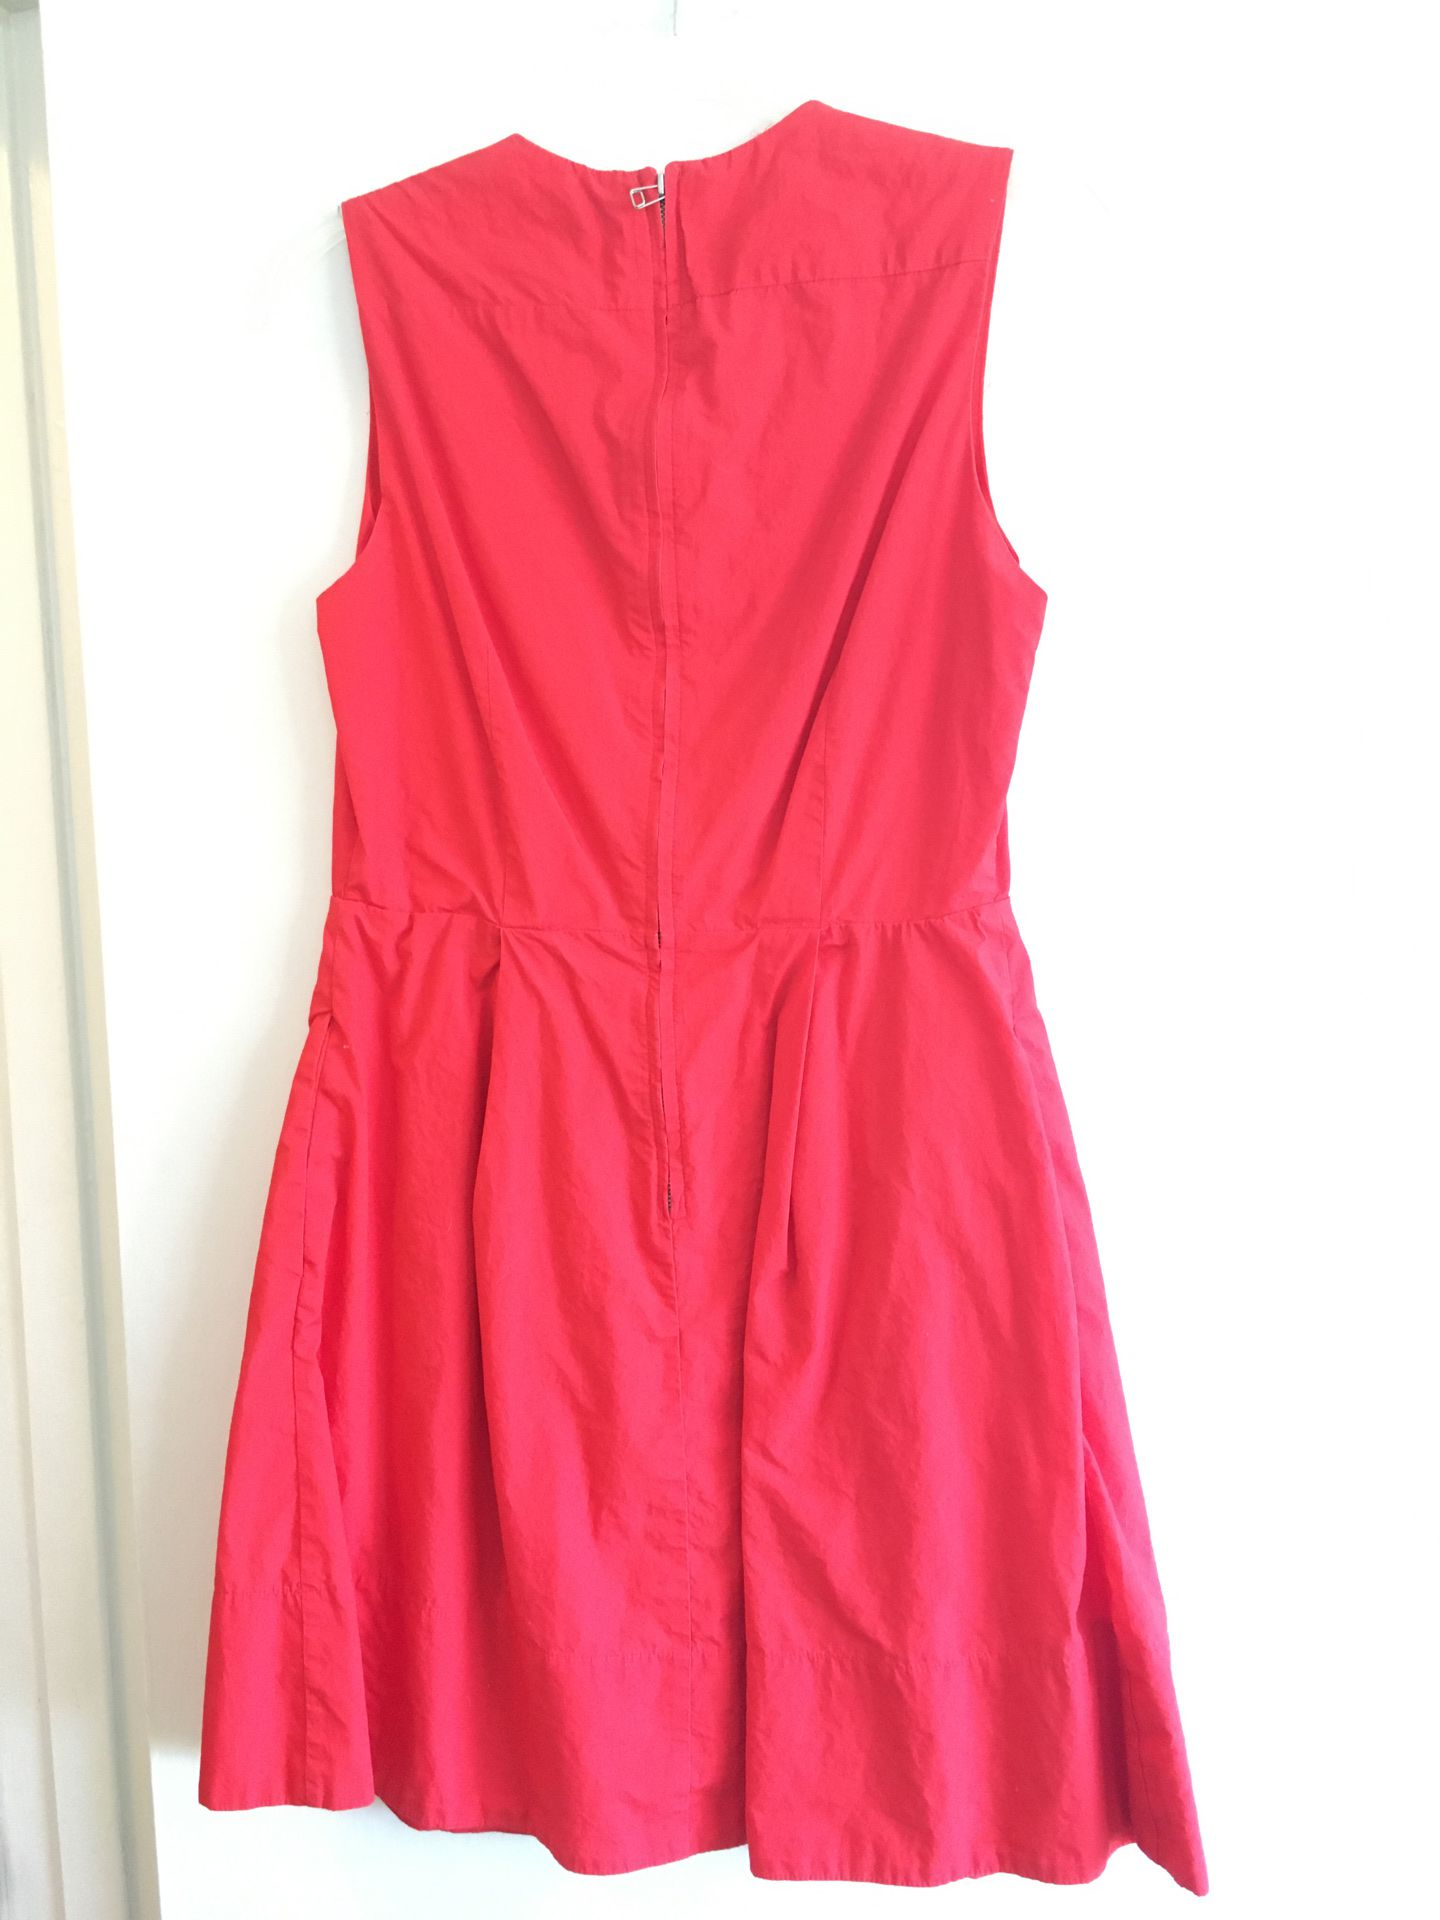 Red dress size 4